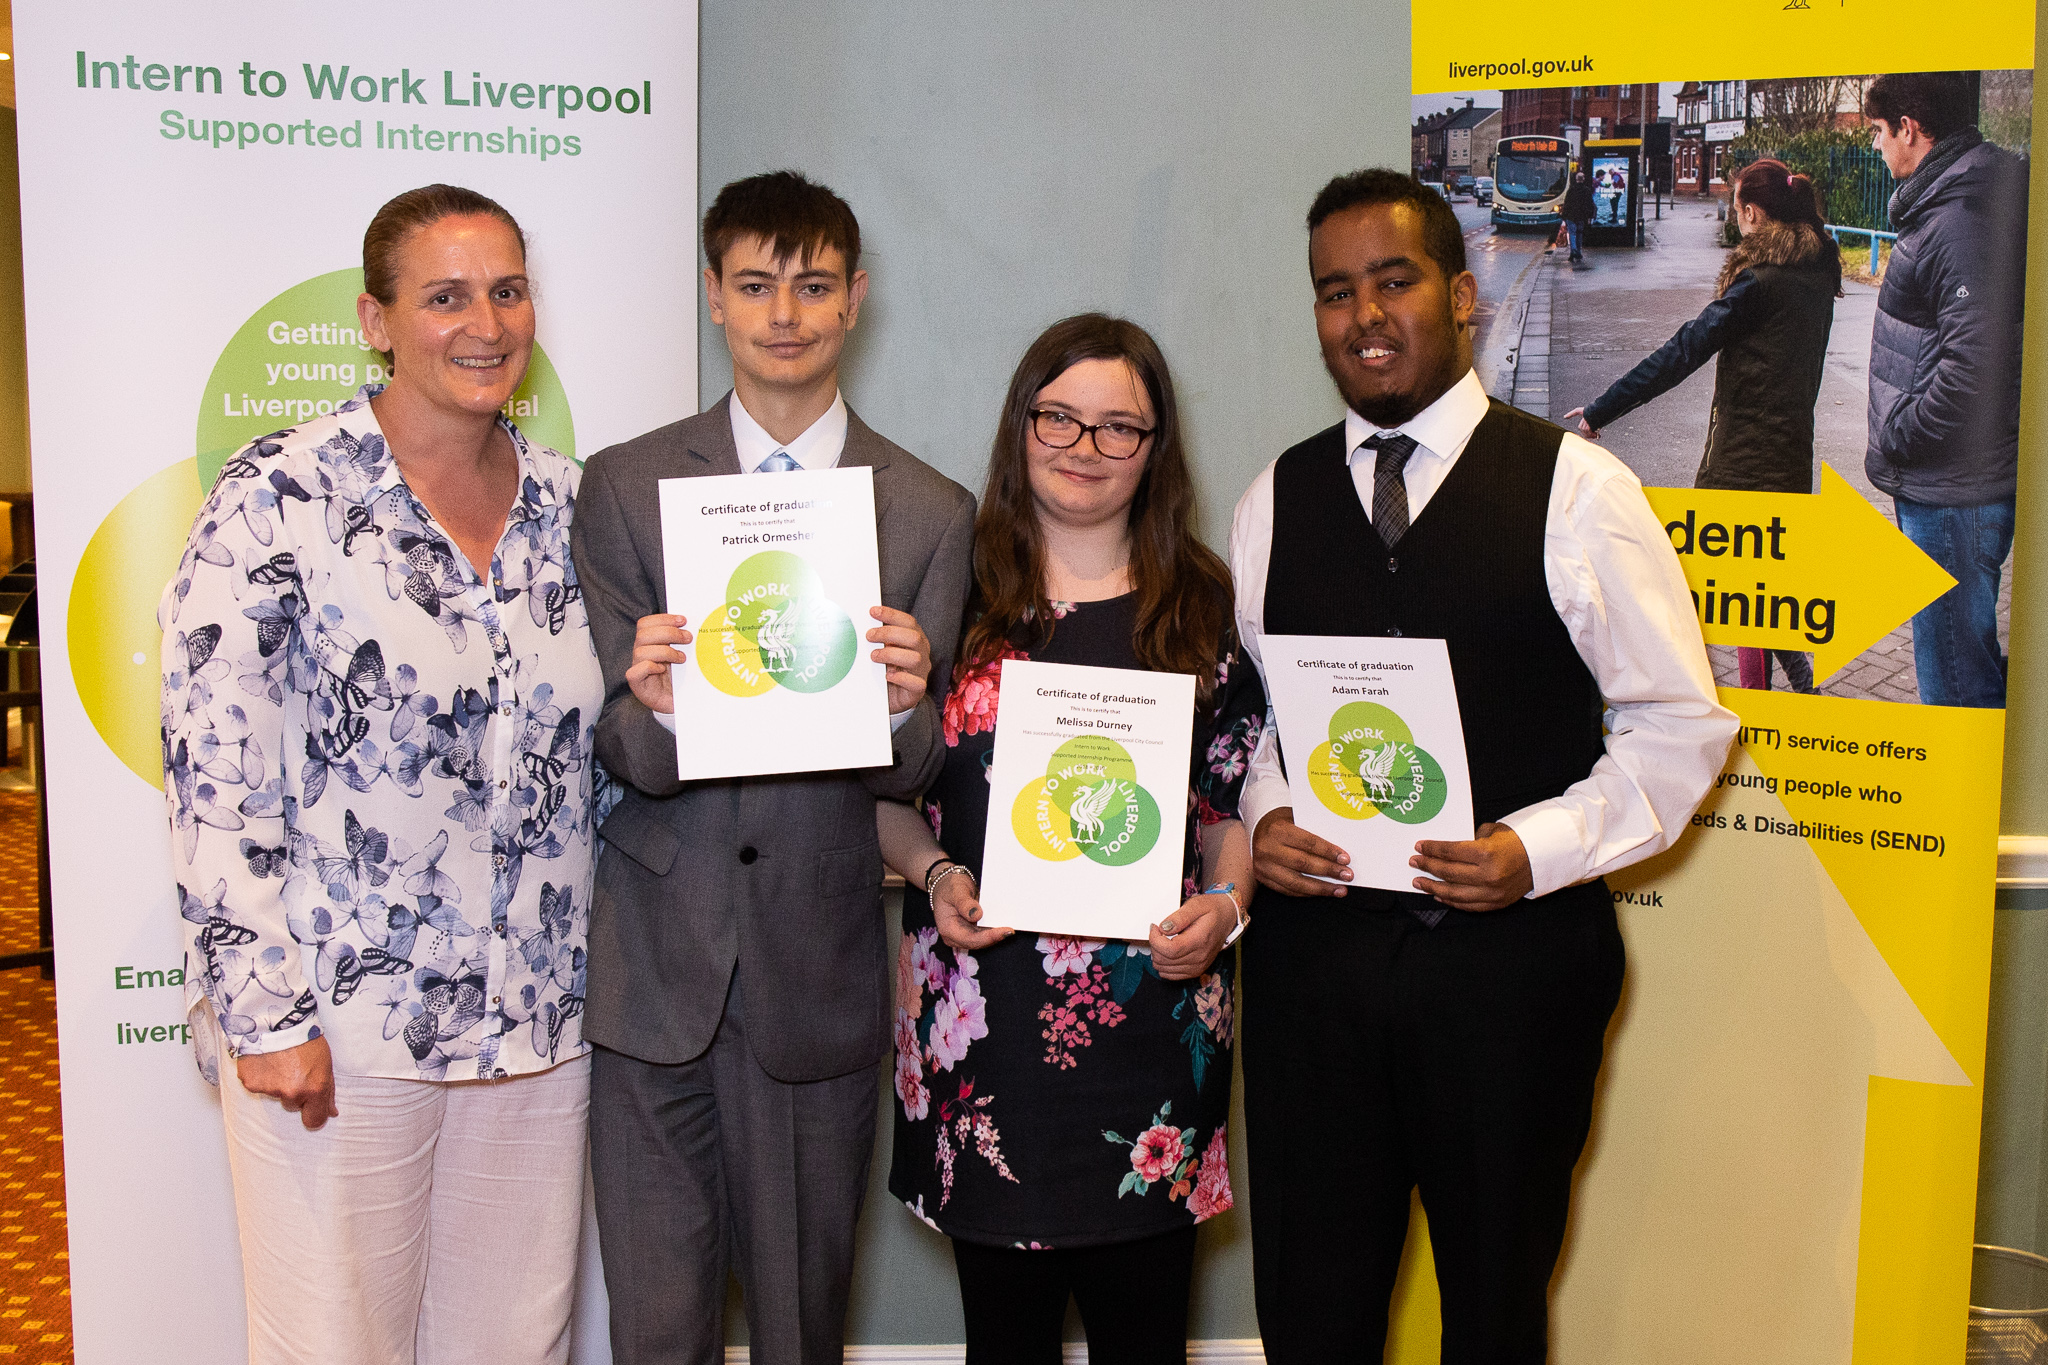 Melissa, Adam and Patrick, supported interns with their graduation certificates, with Lynne Brown, Job coach from Sandfield Park School.